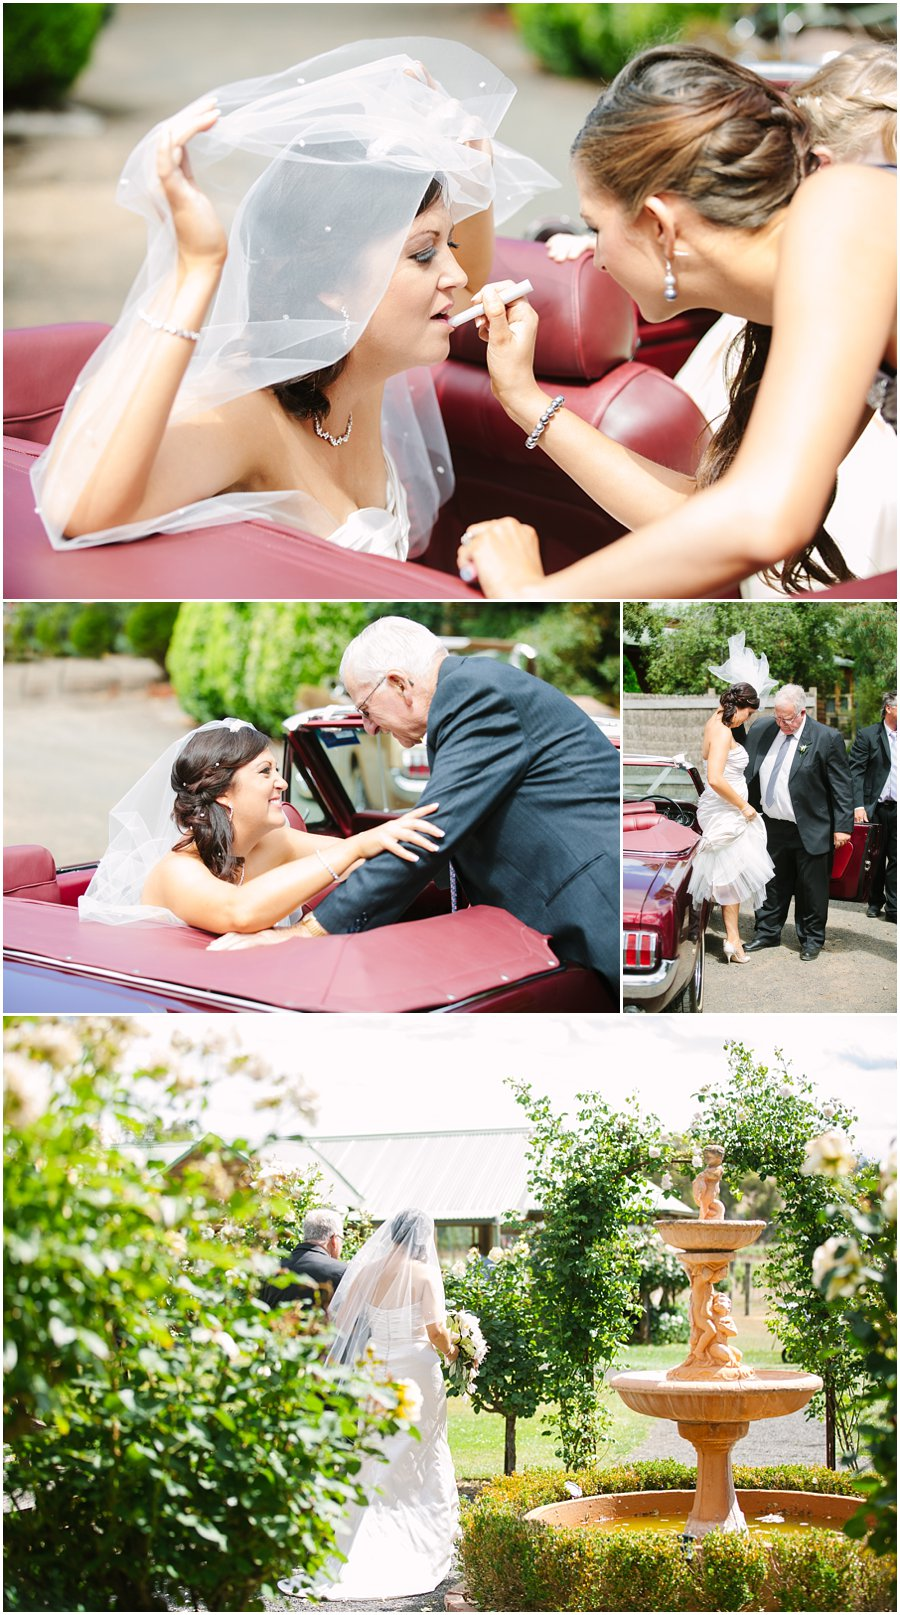 Christian_Chanelle_Harvey_Lancefield_Wedding_08